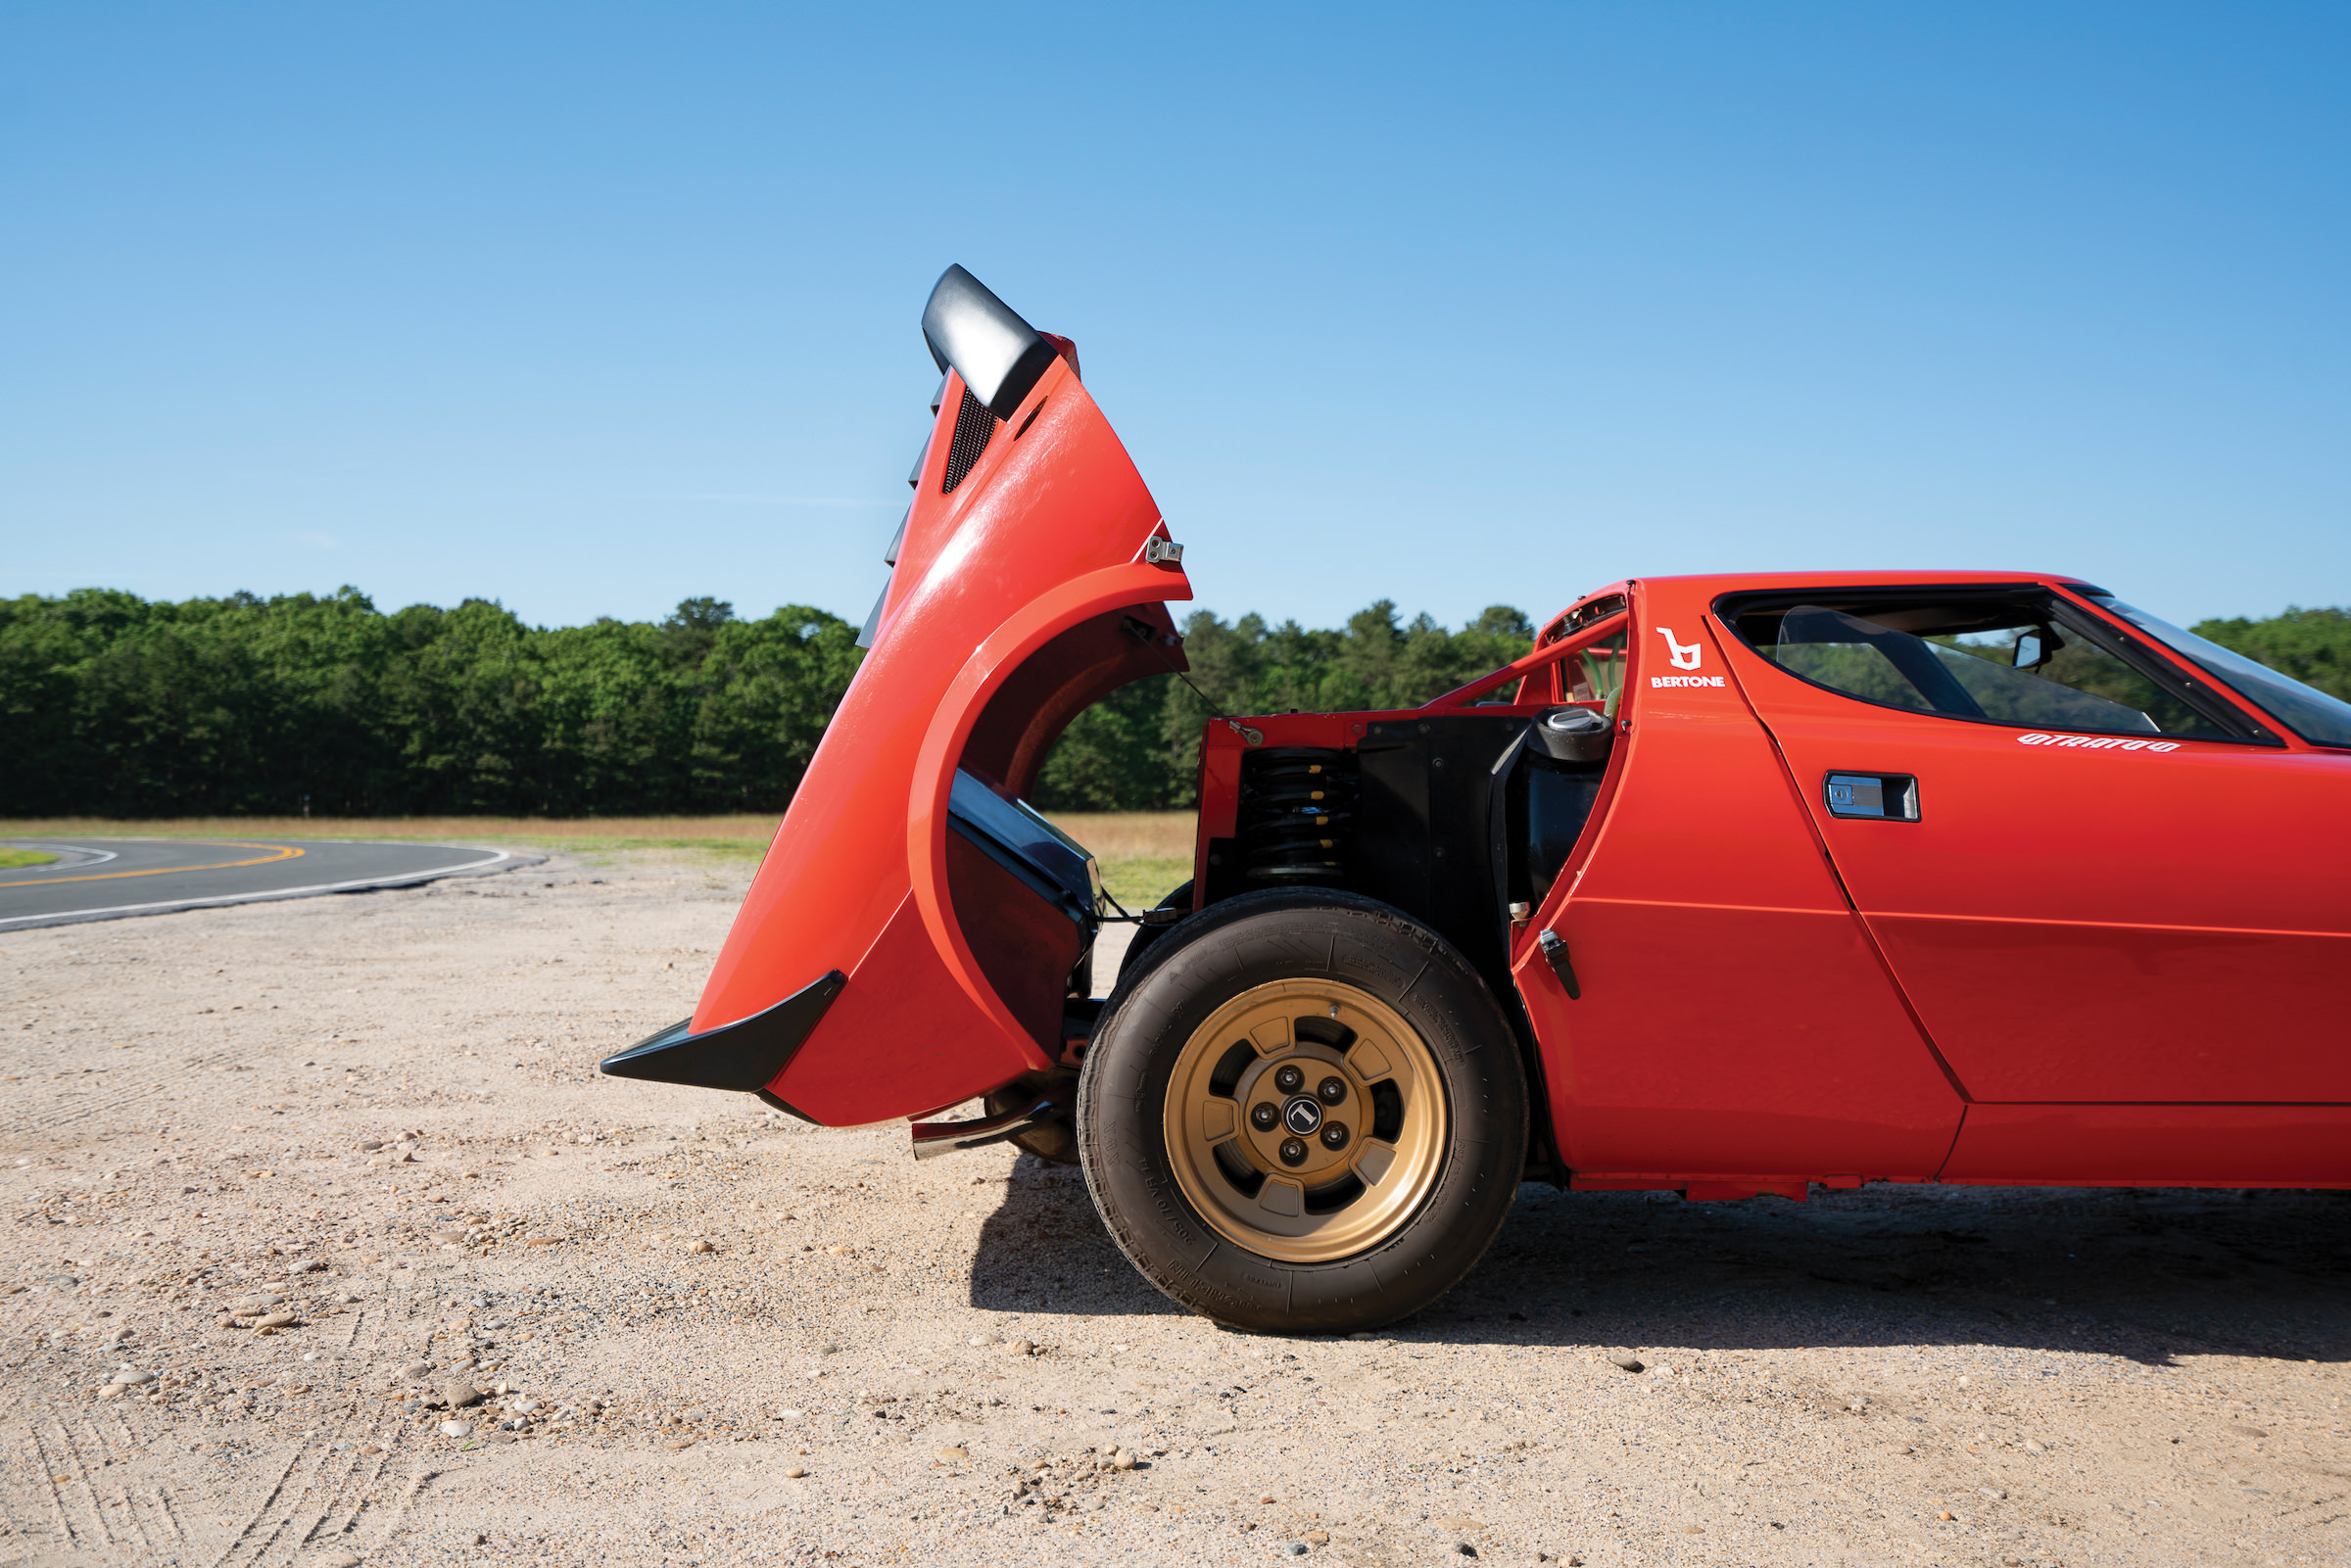 The Lancia Stratos Hf The King Of 70s Rally